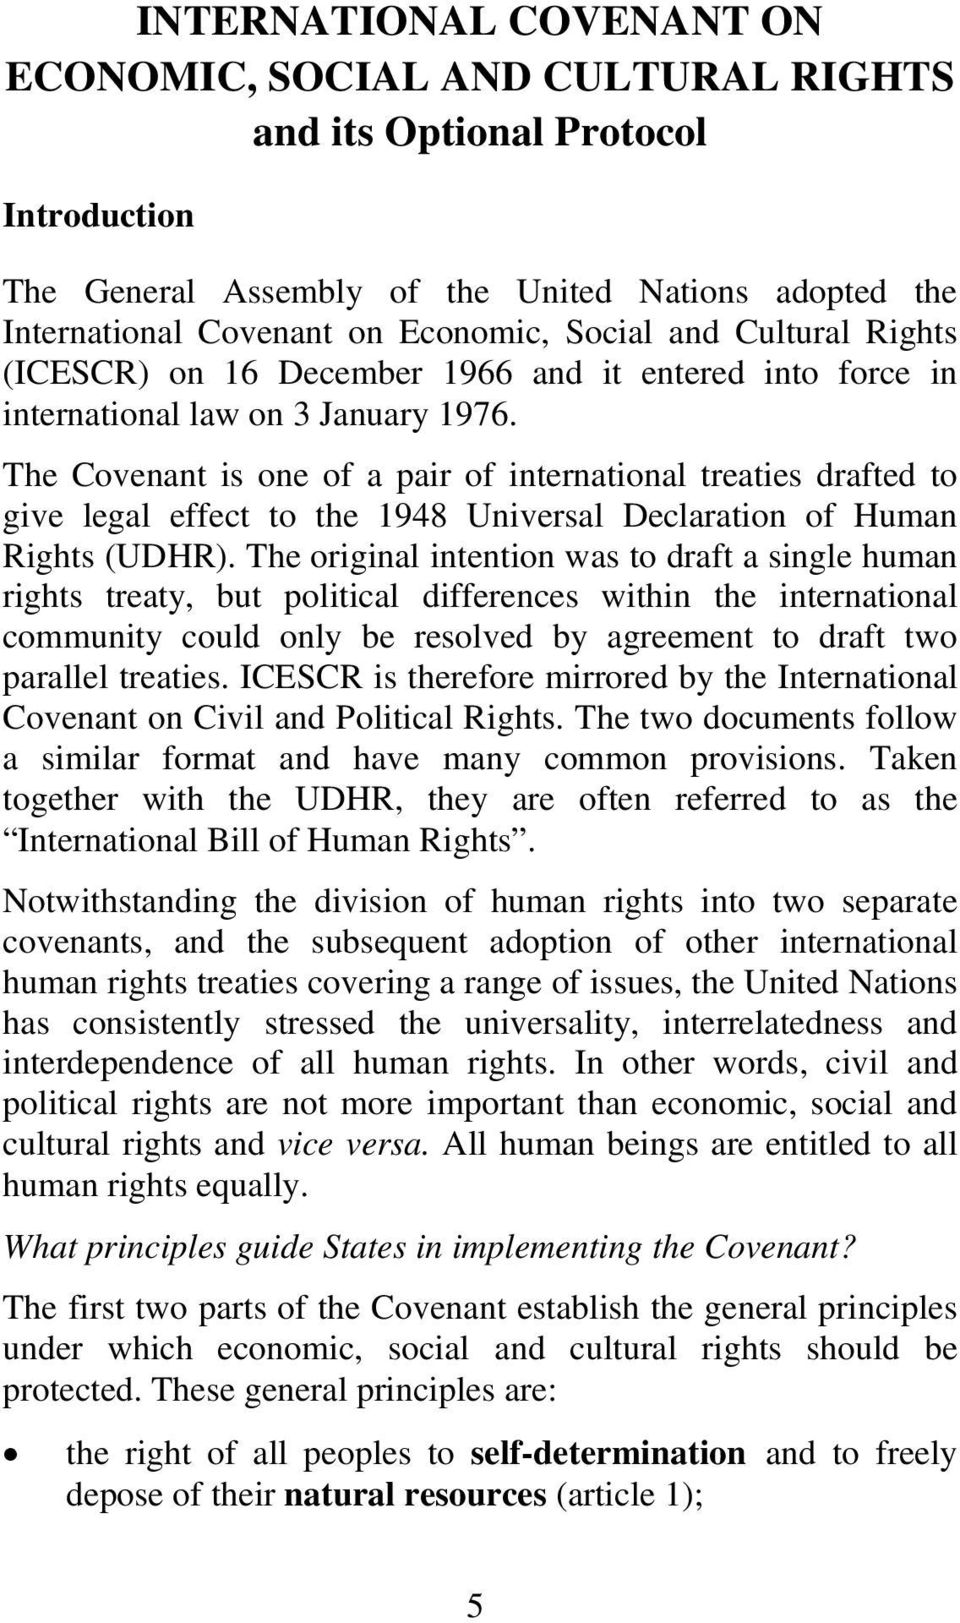 The Covenant is one of a pair of international treaties drafted to give legal effect to the 1948 Universal Declaration of Human Rights (UDHR).